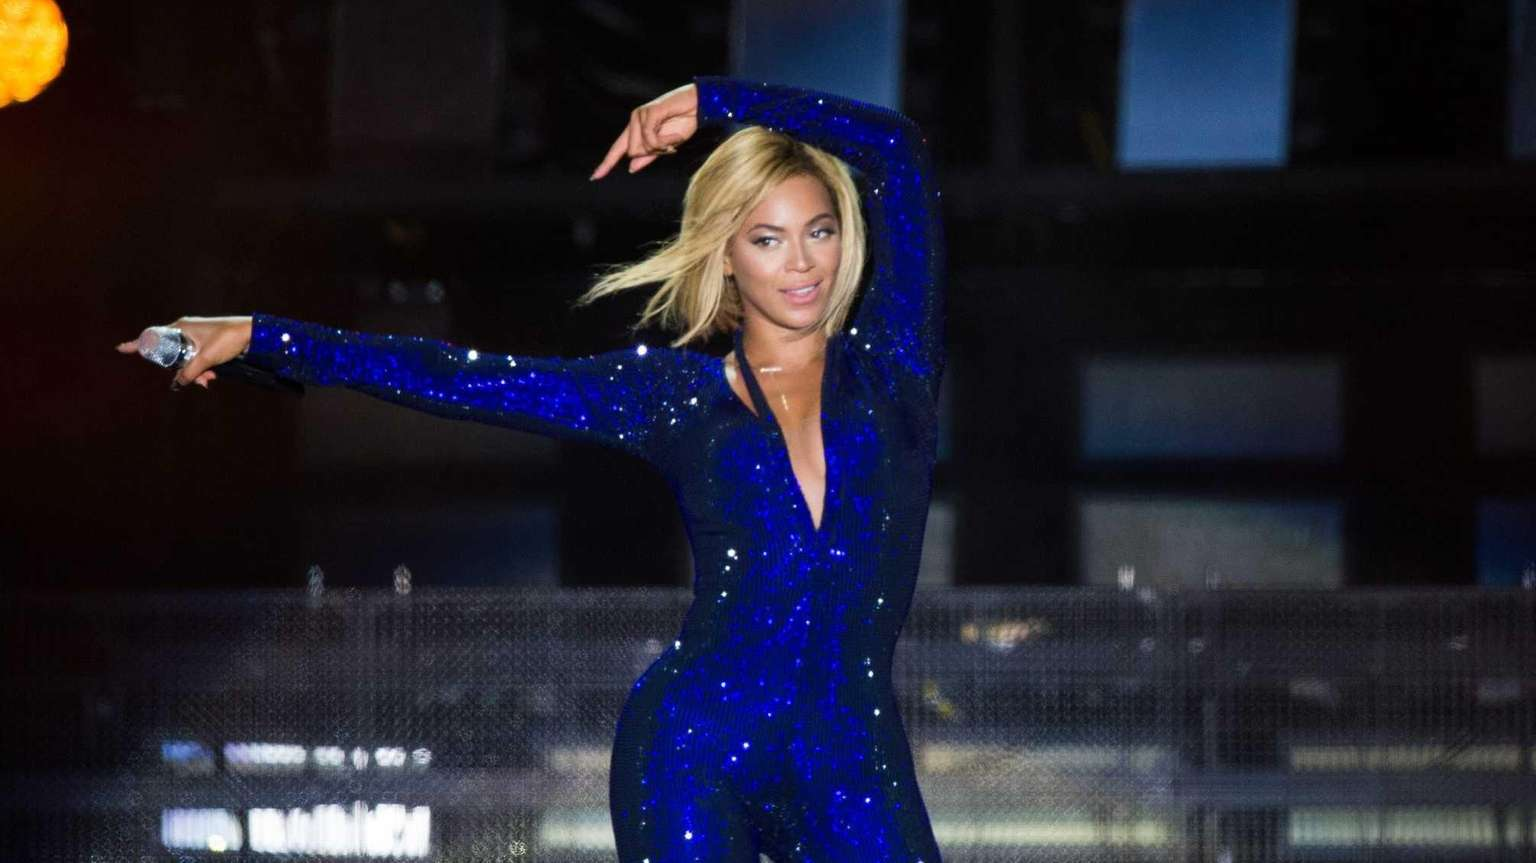 Beyoncé performs on the Virgin Media Stage at